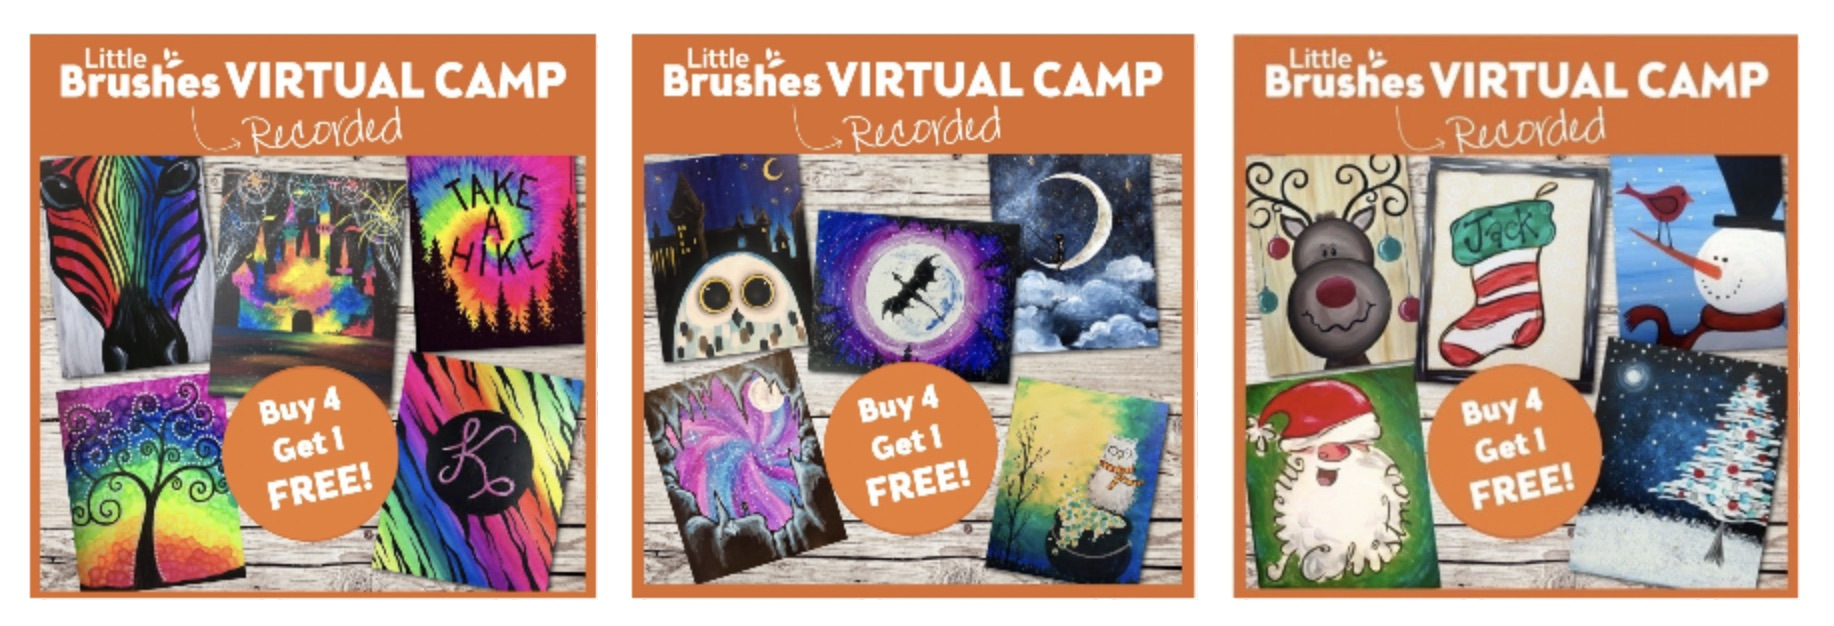 We have Virtual Kids Camp Kits!